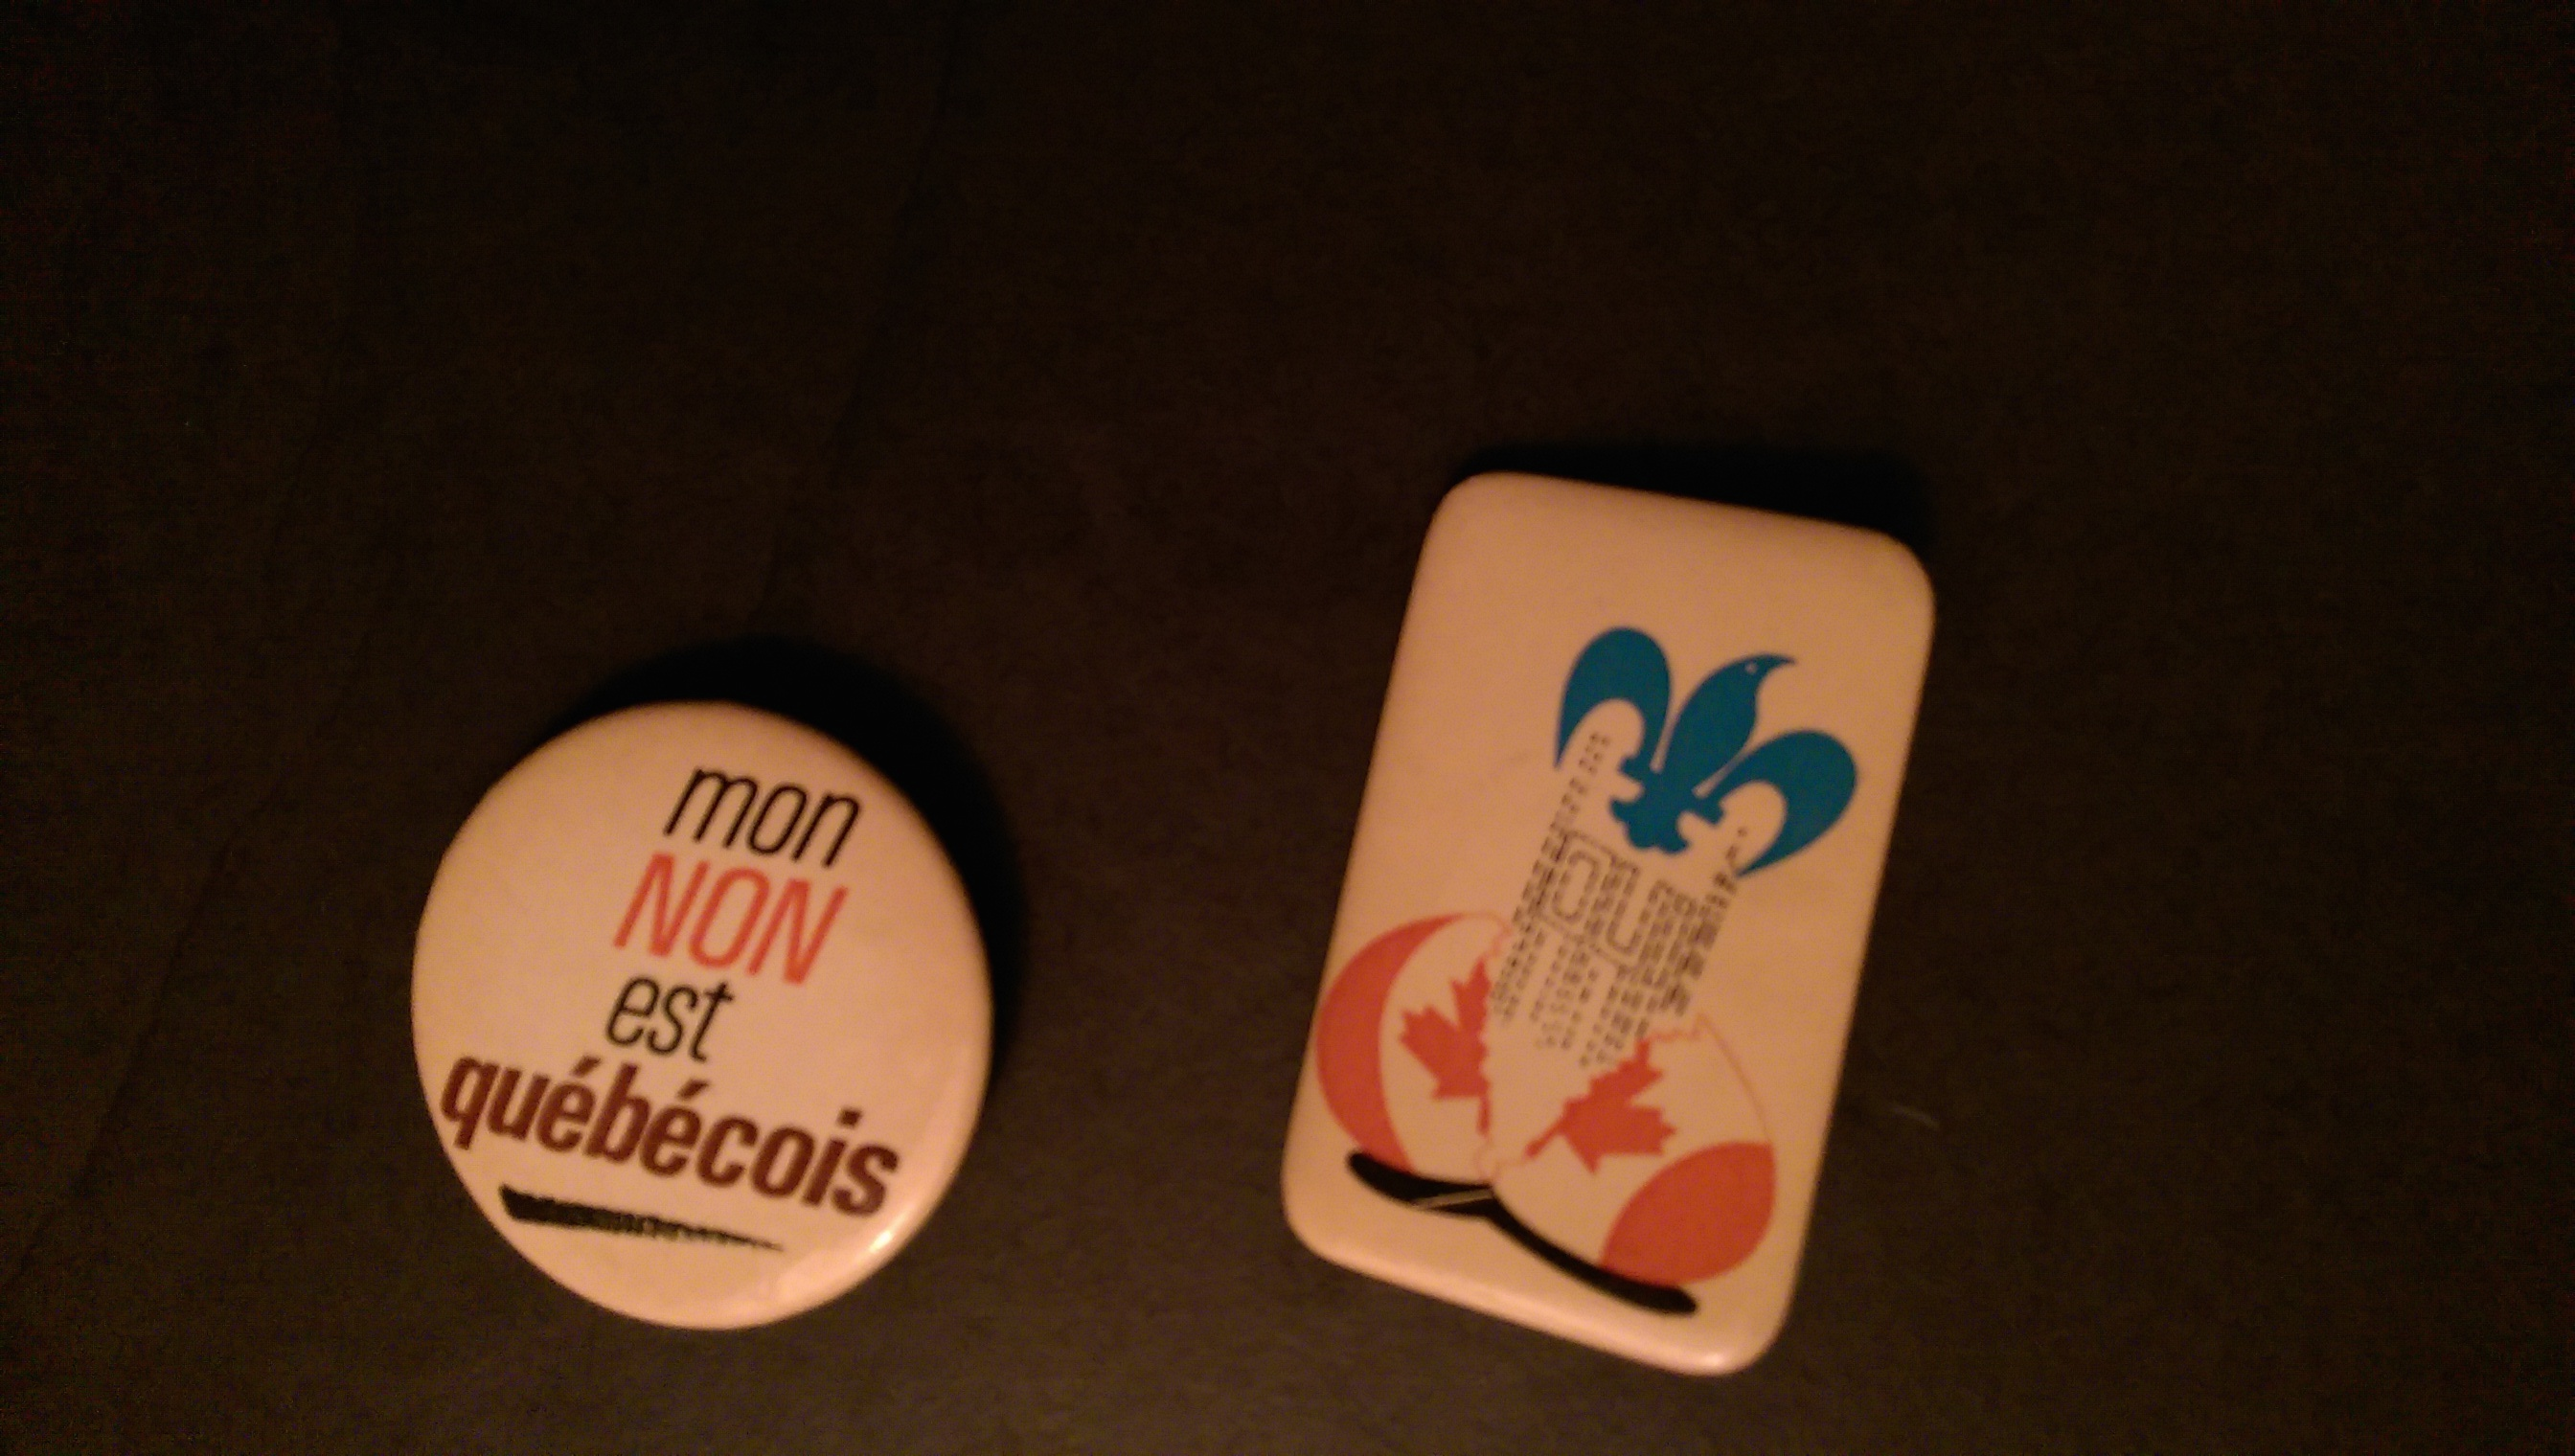 Two badges from the 1995 Quebec independence referendum. Long description available.